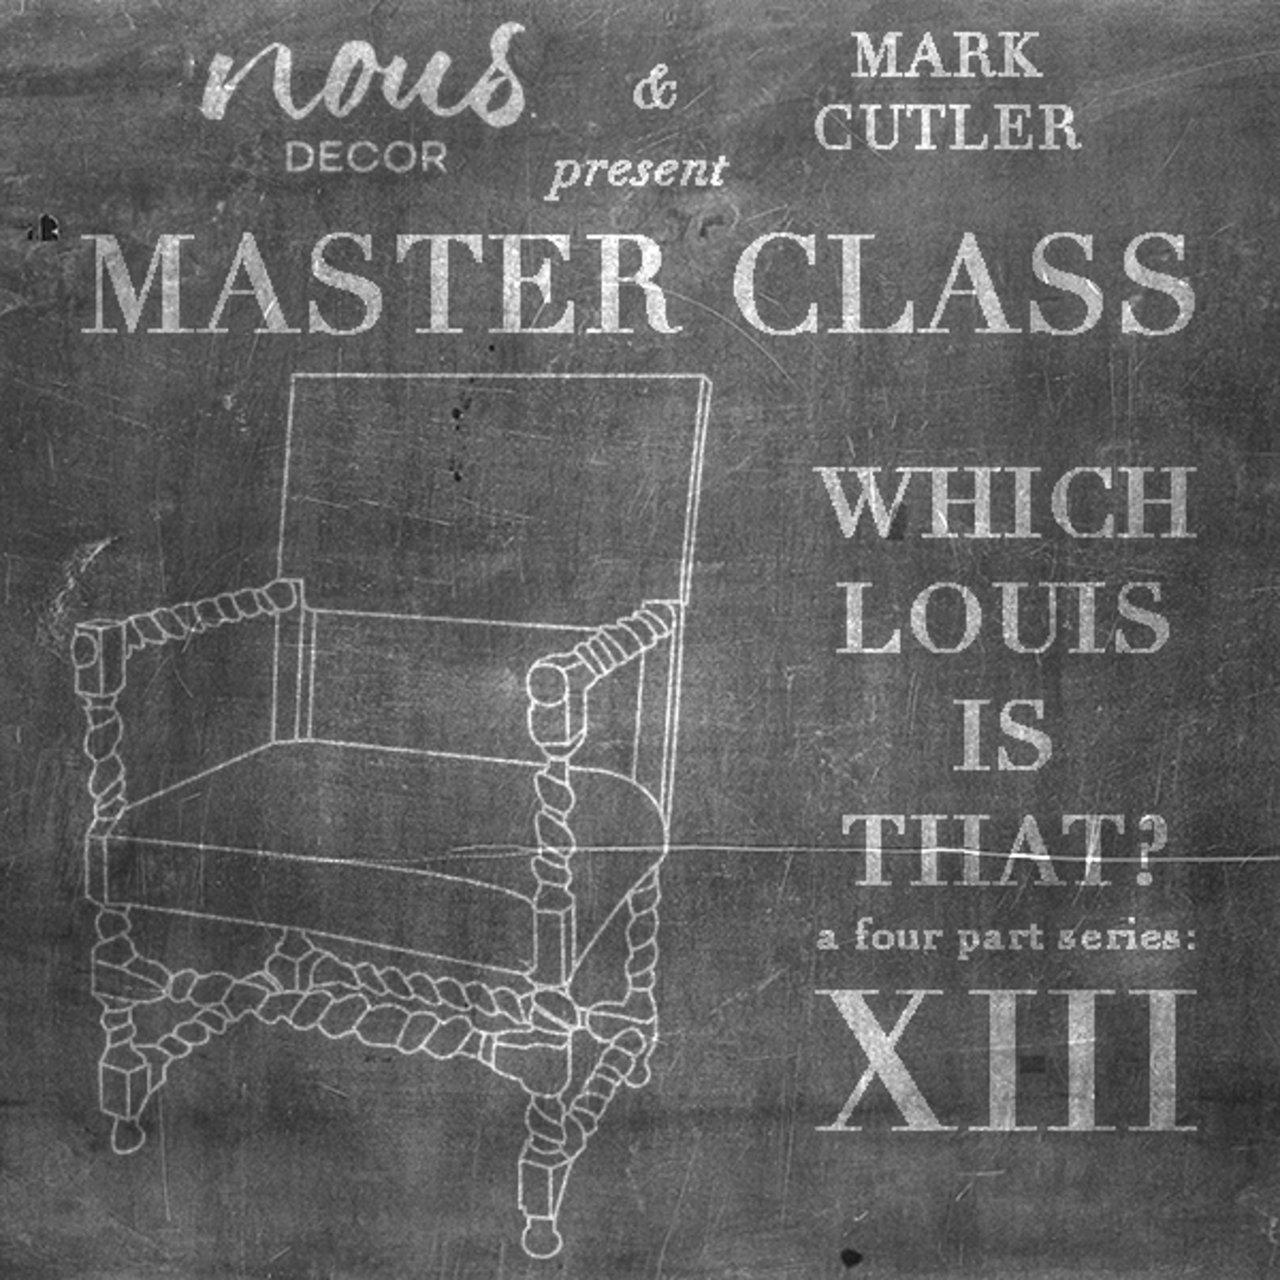 master class nousdecor louis XIII furniture